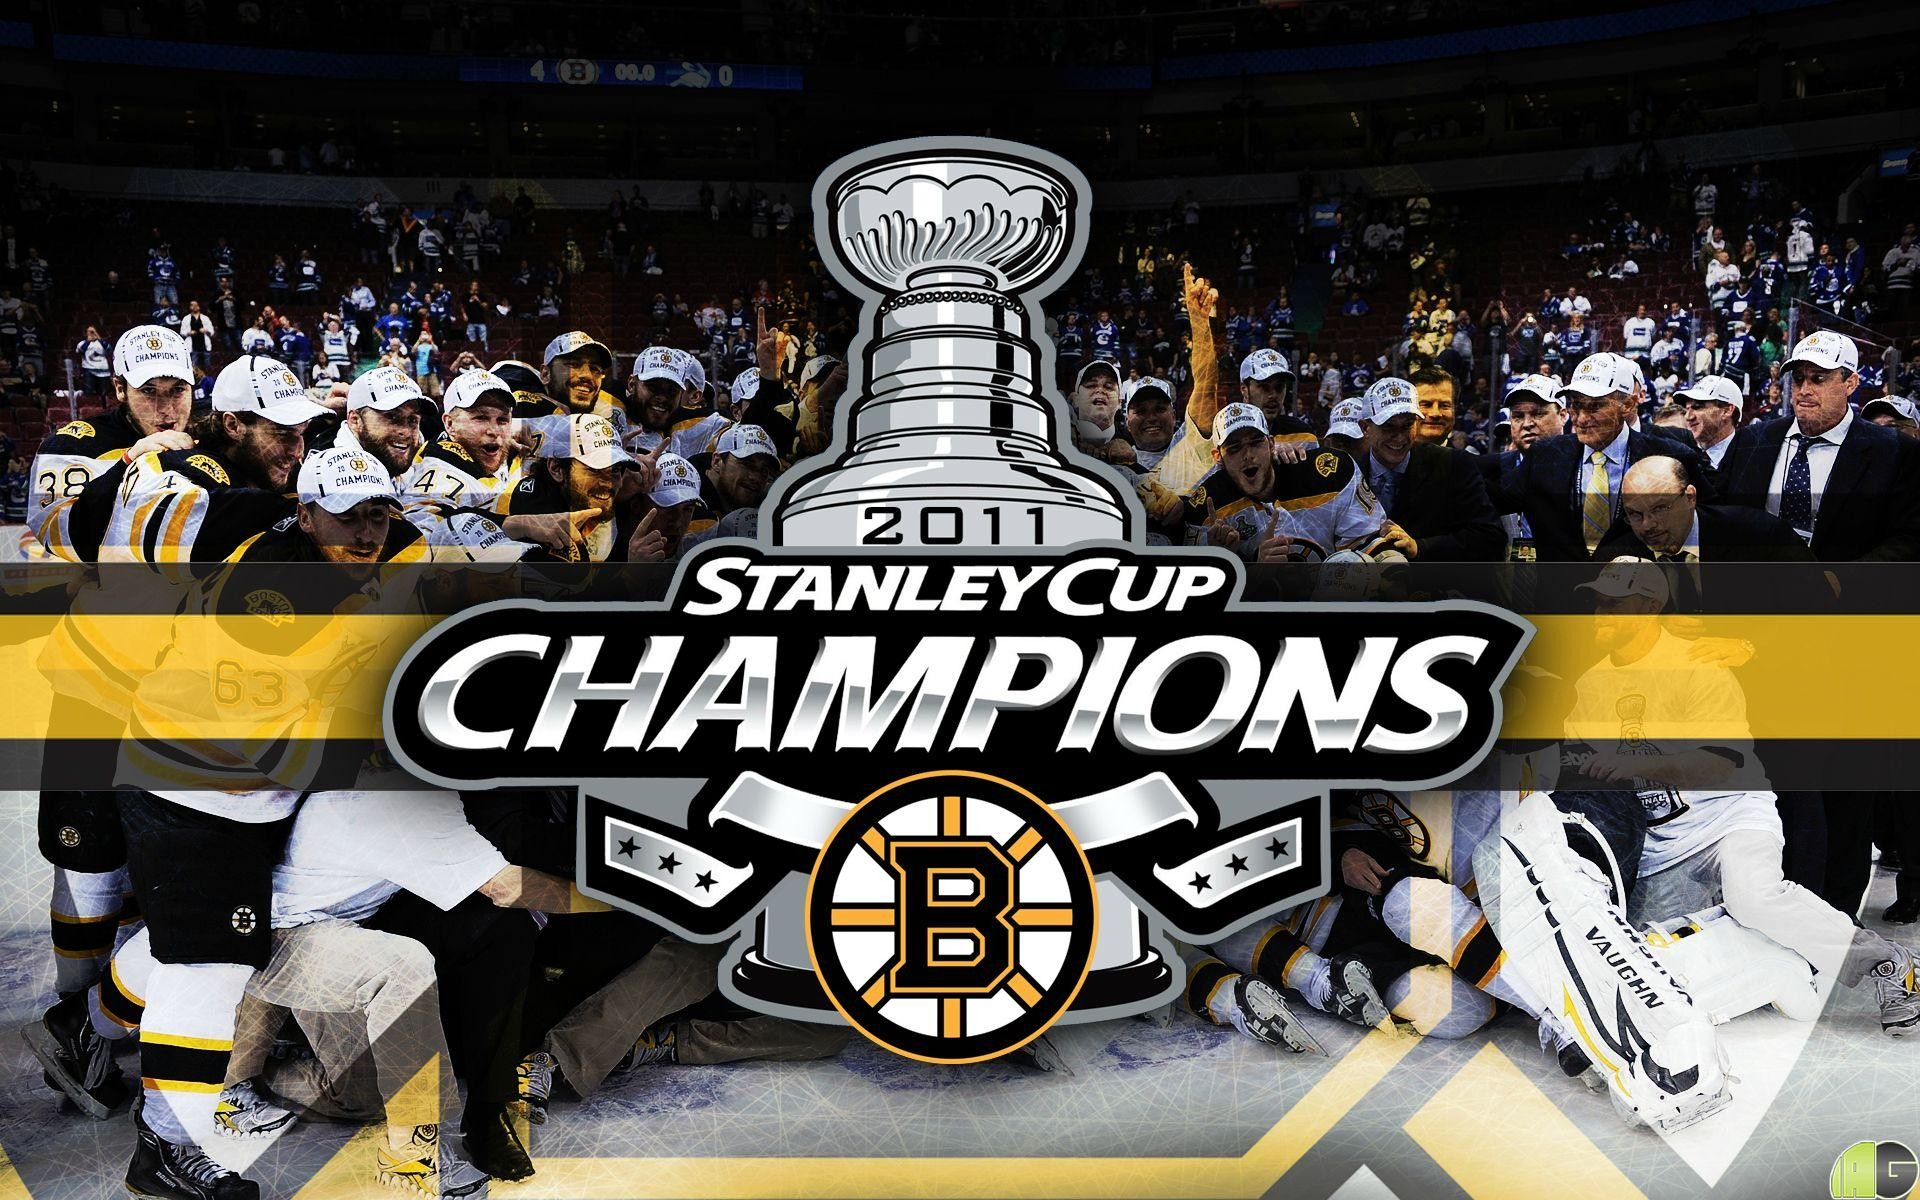 Stanley Cup Champions Boston Bruins 3 07 2011 Wallpaper 1920?1200 .